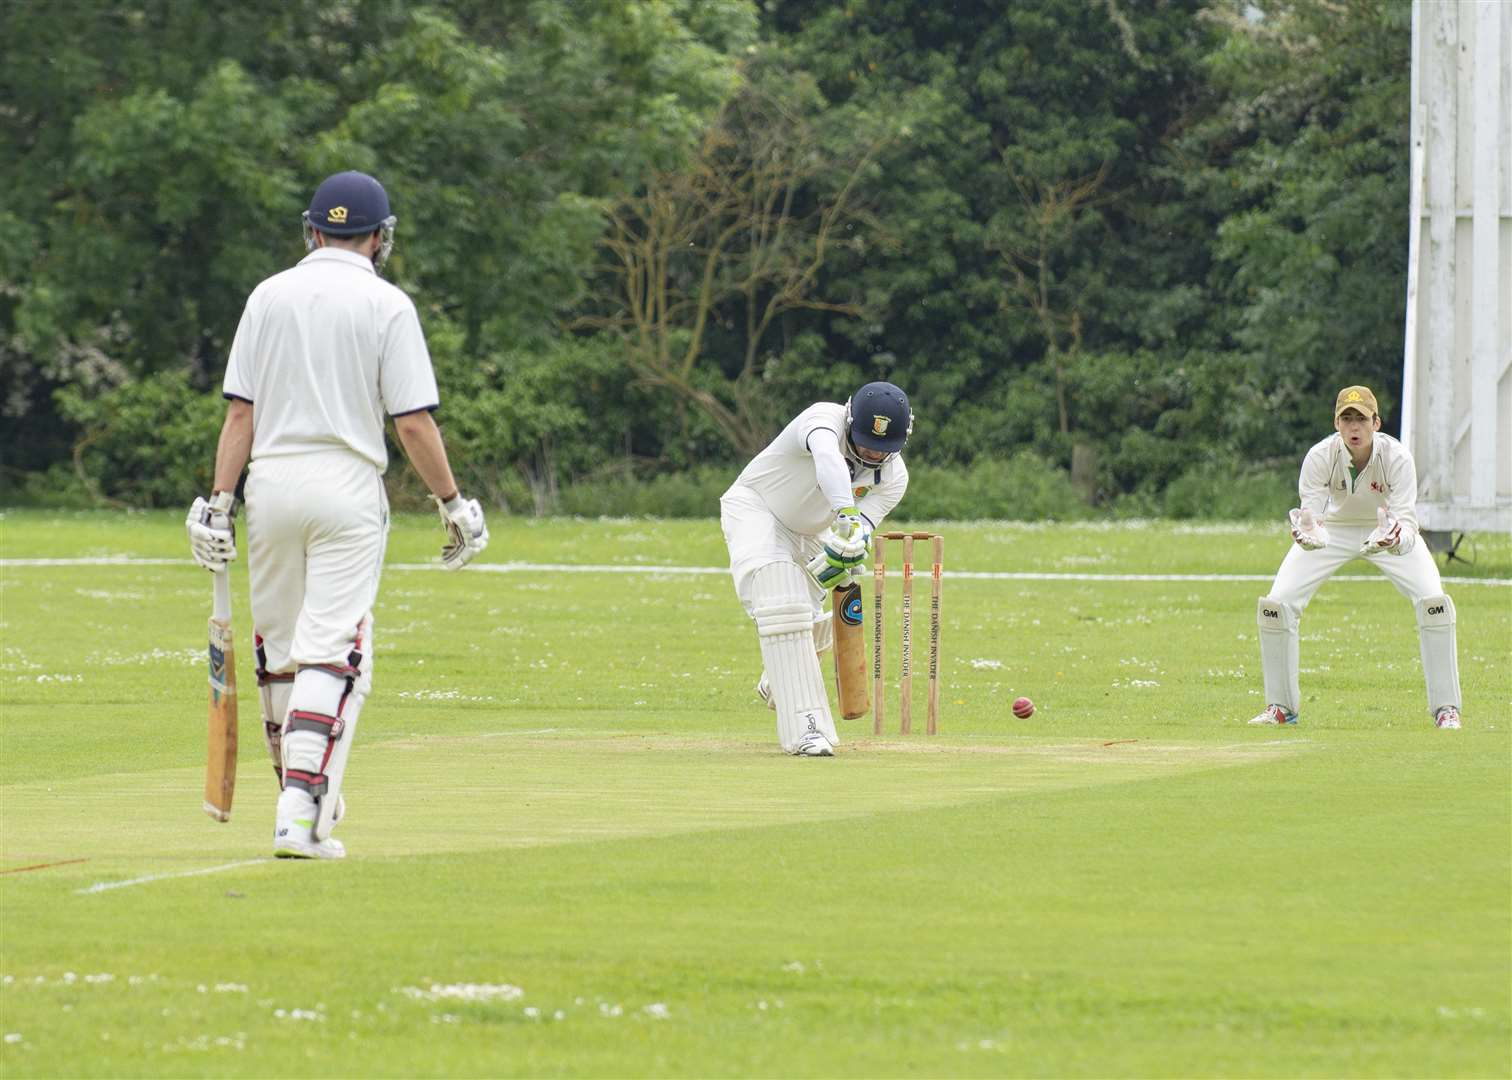 Liam Dave scored 21 for Stamford on Saturday in their win over Blunham.. Photo: Lee Hellwing.